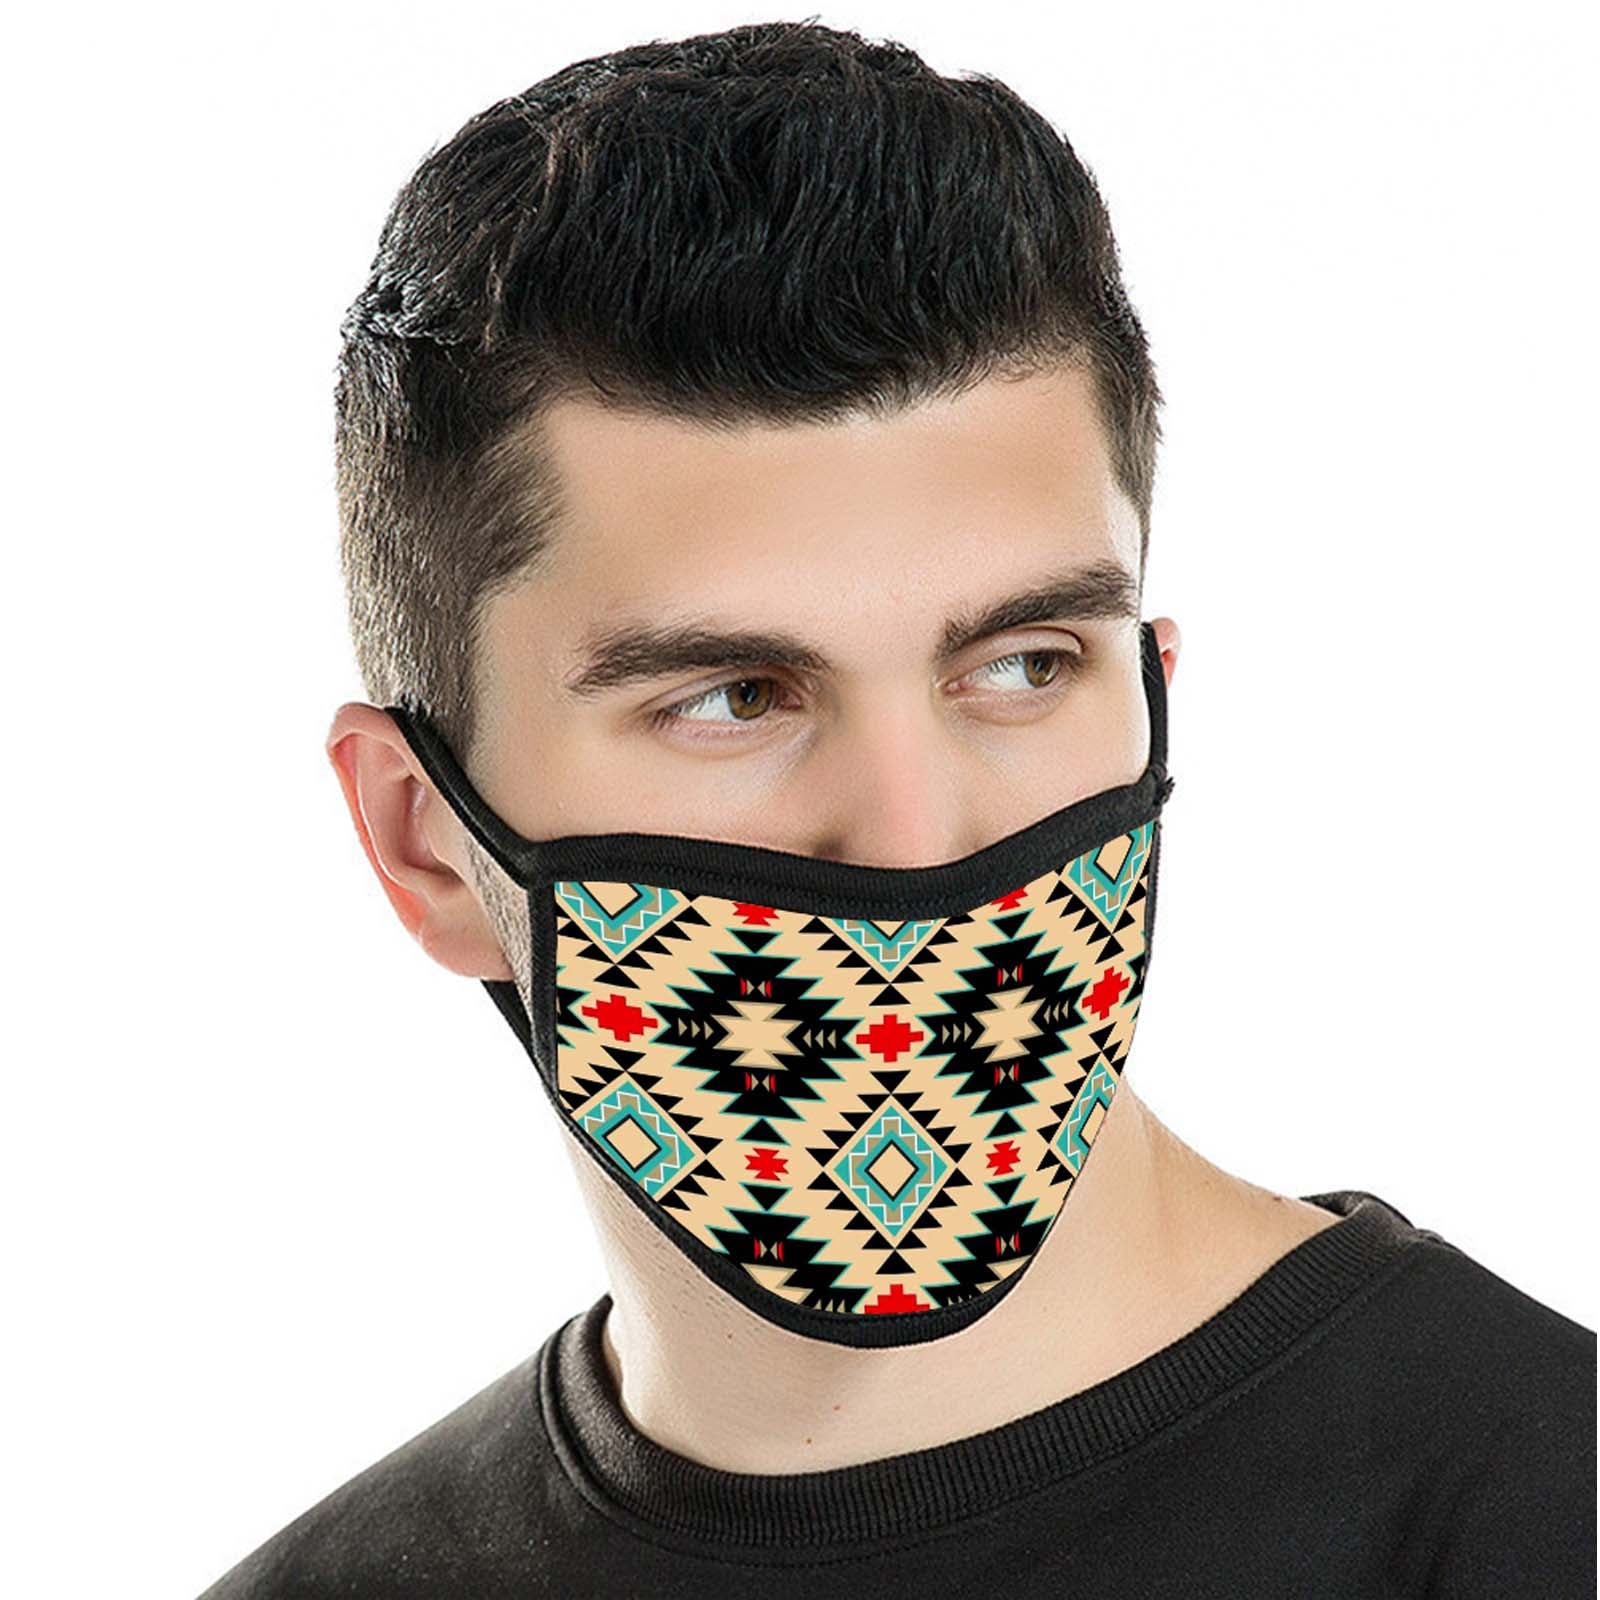 FCM-009 American Bling Tan Aztec Print Fabric Face Mask Double Layer 2PCS